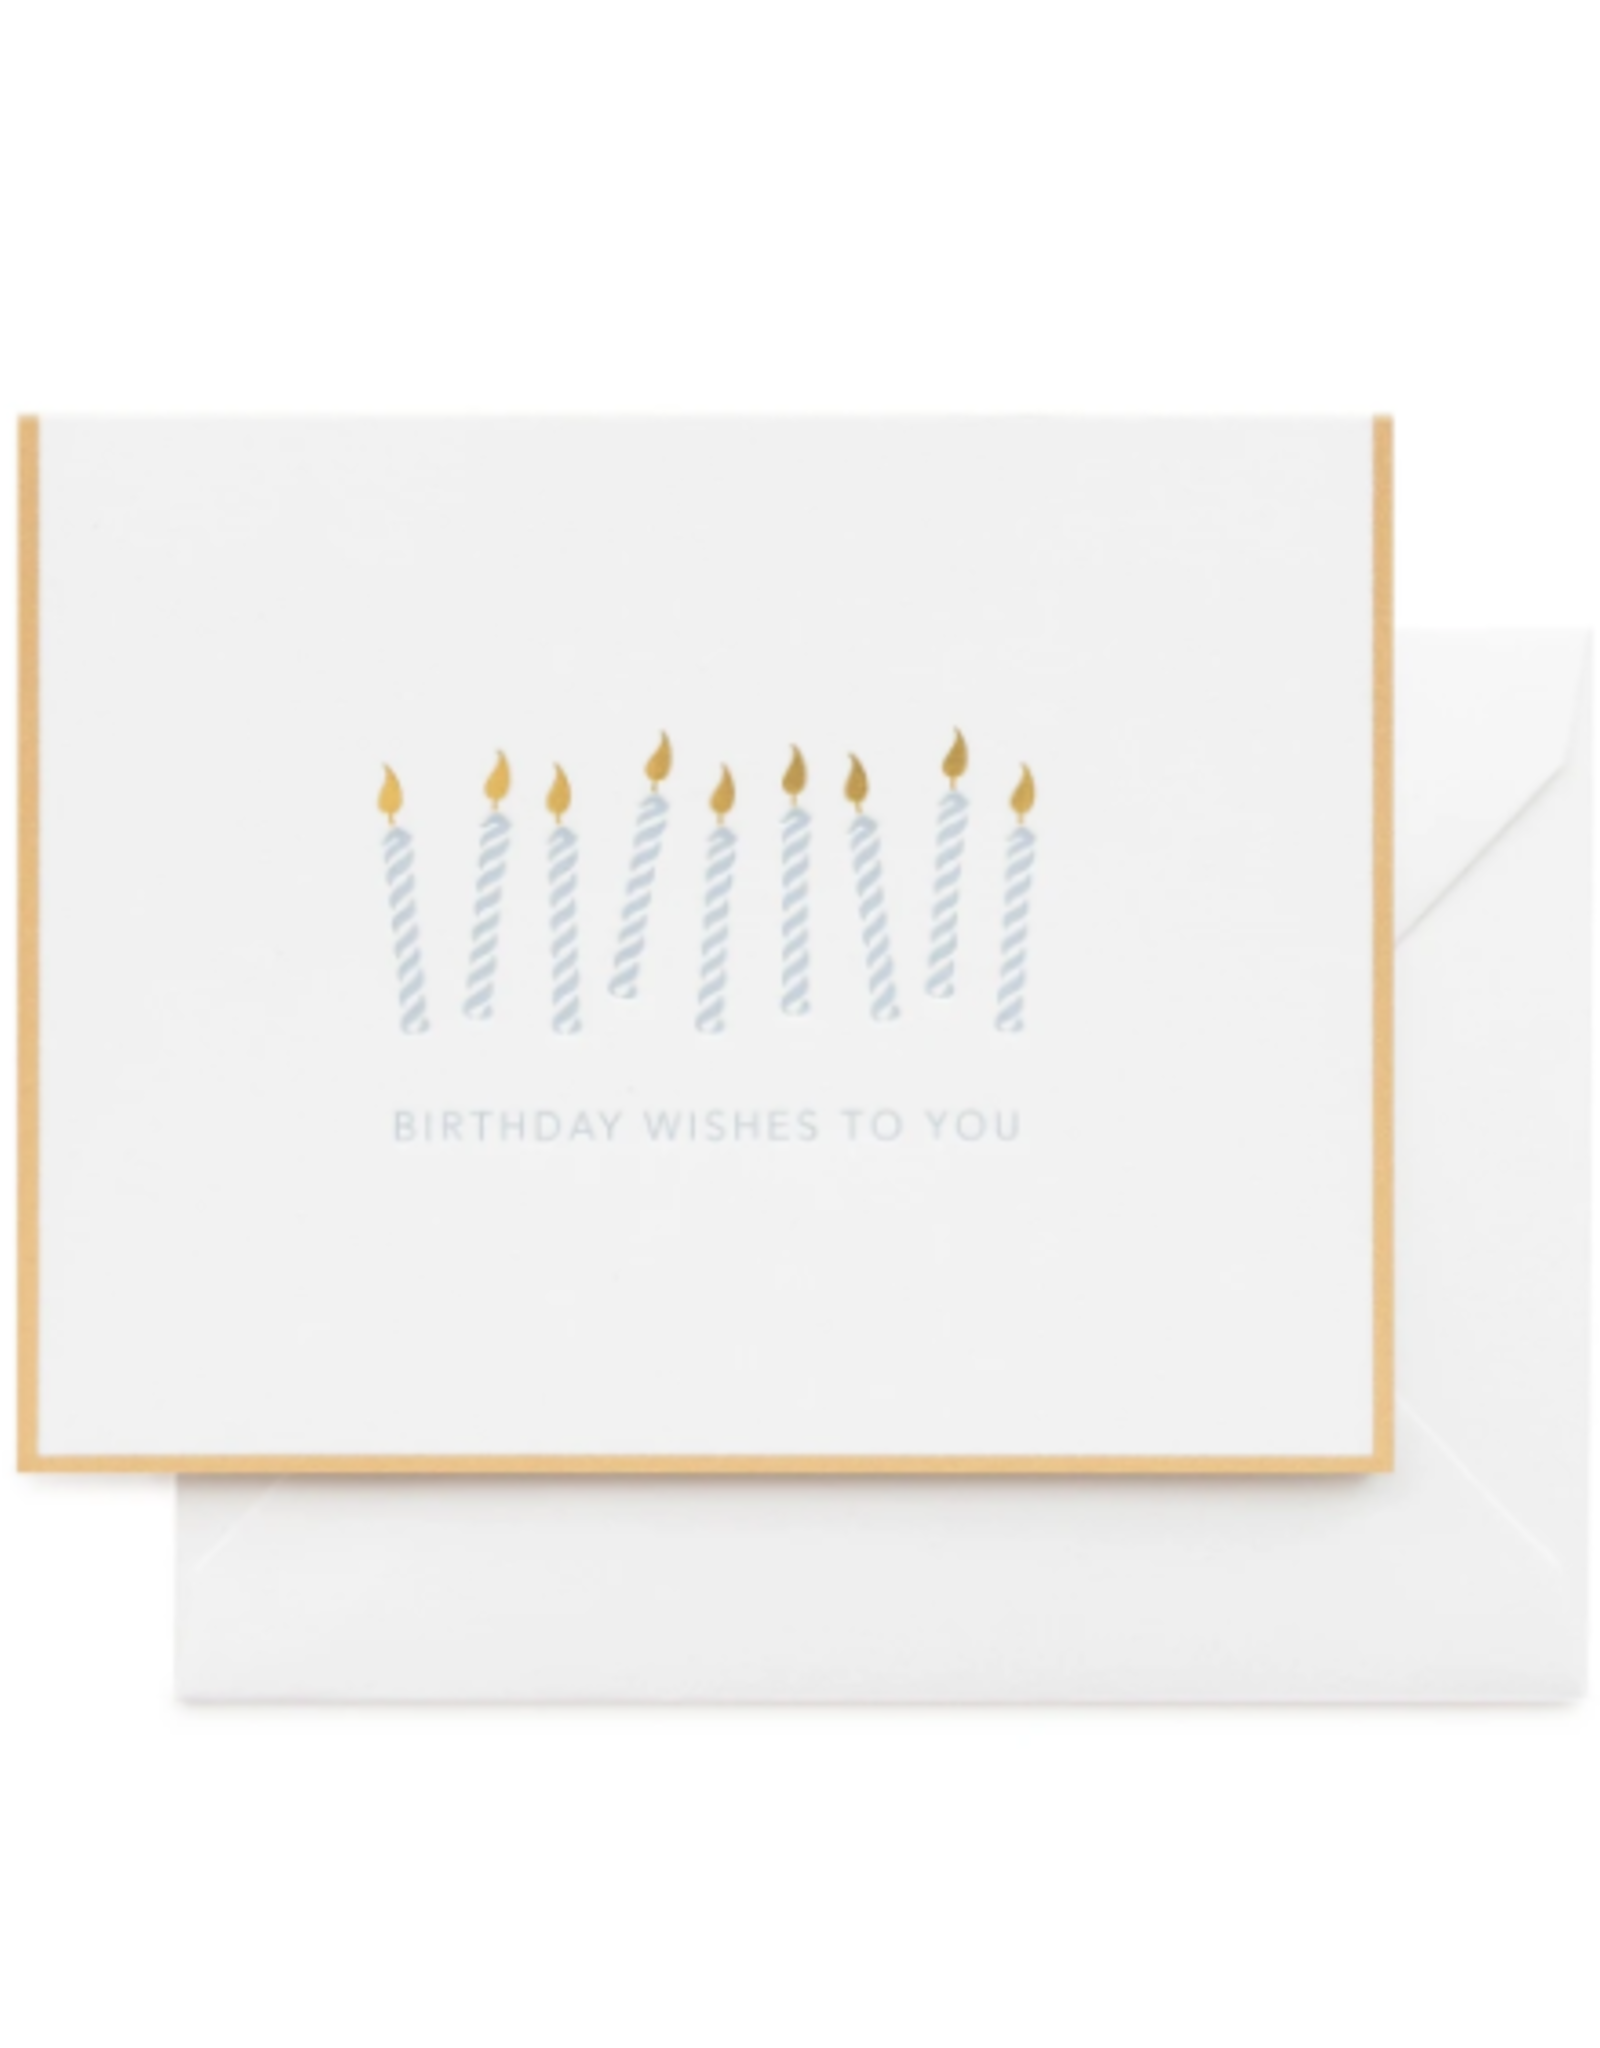 Birthday Wishes To You Card